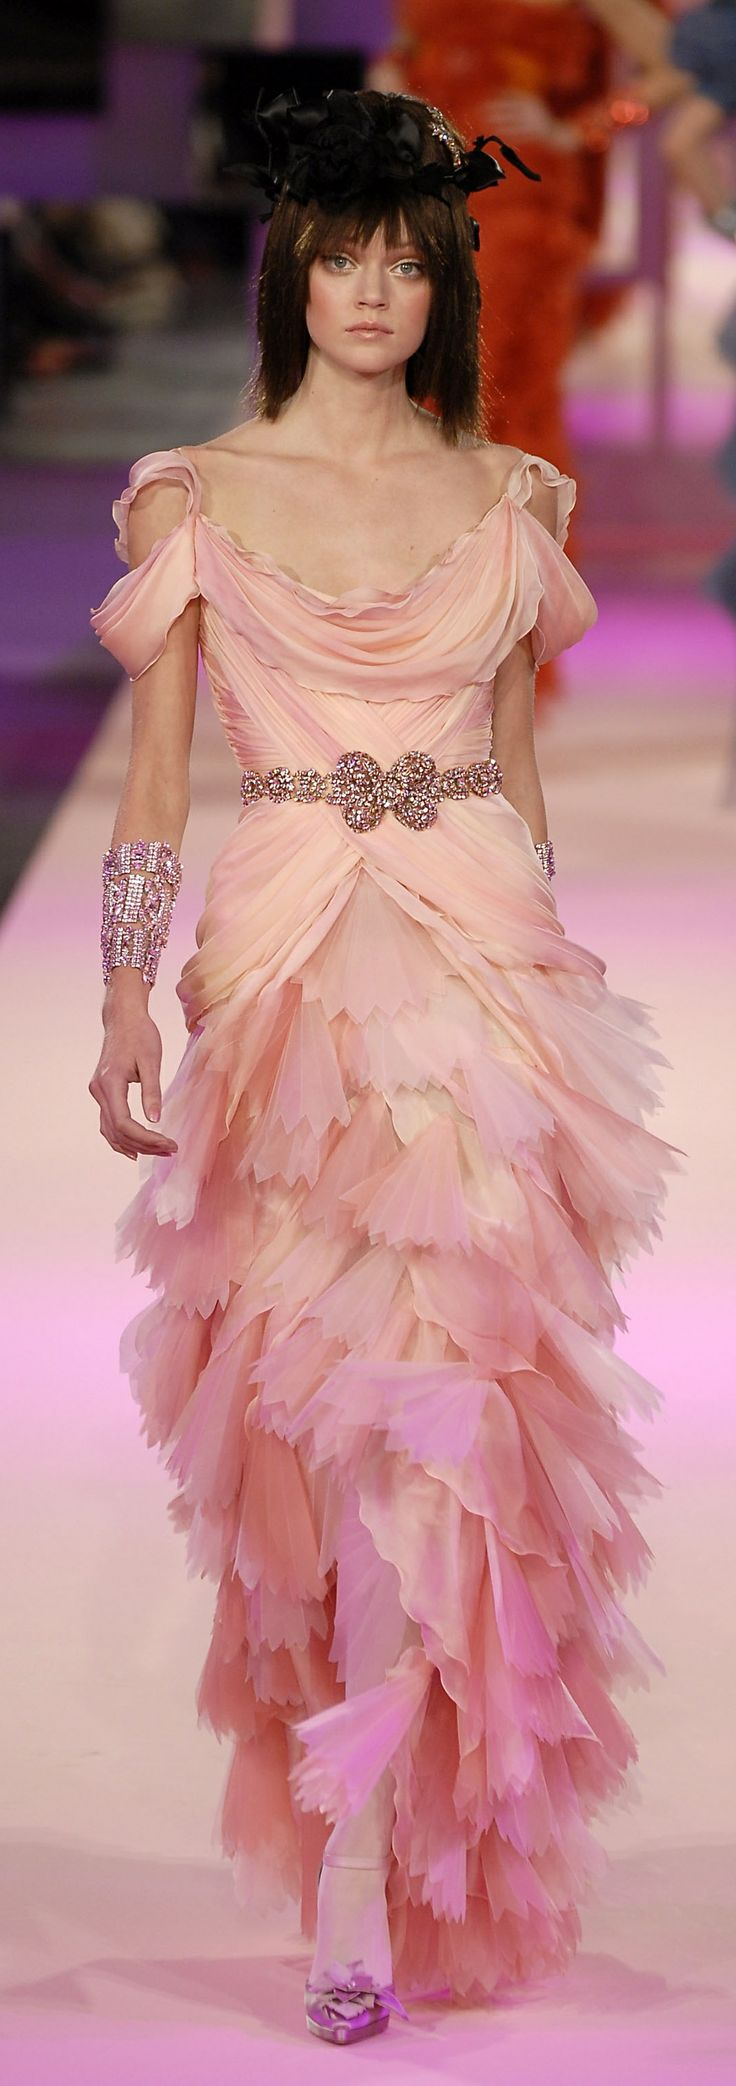 Pin by tallulah wentworth on christian lacroix pinterest for Haute couture spelling